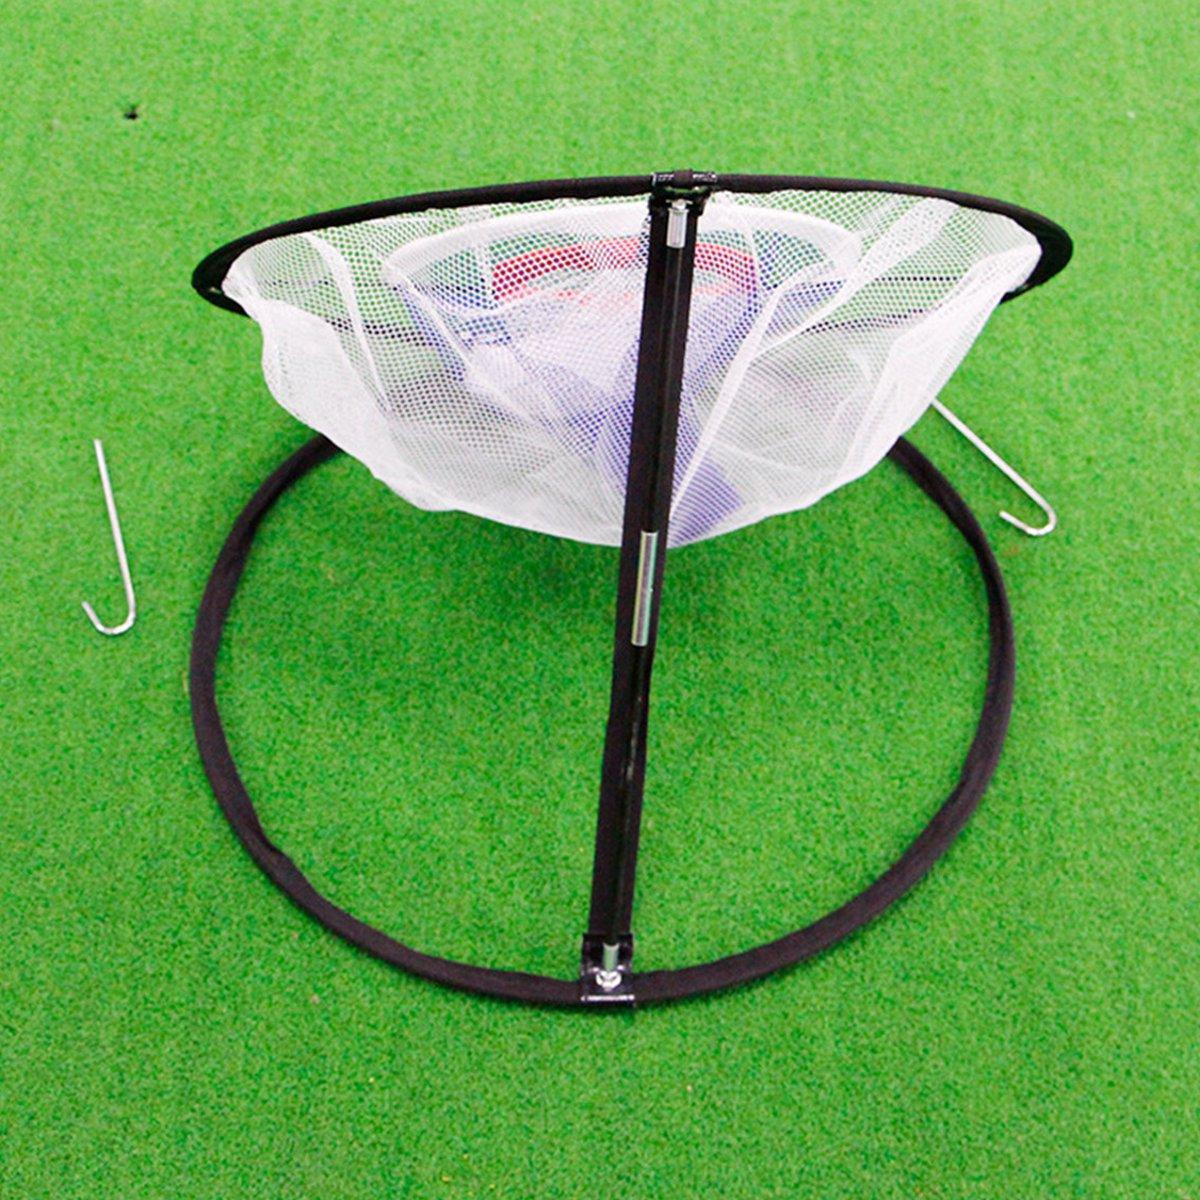 Golf Chipping Pitching Practice Net Hitting Cage Outils d'aide à la formation en plein air - 3